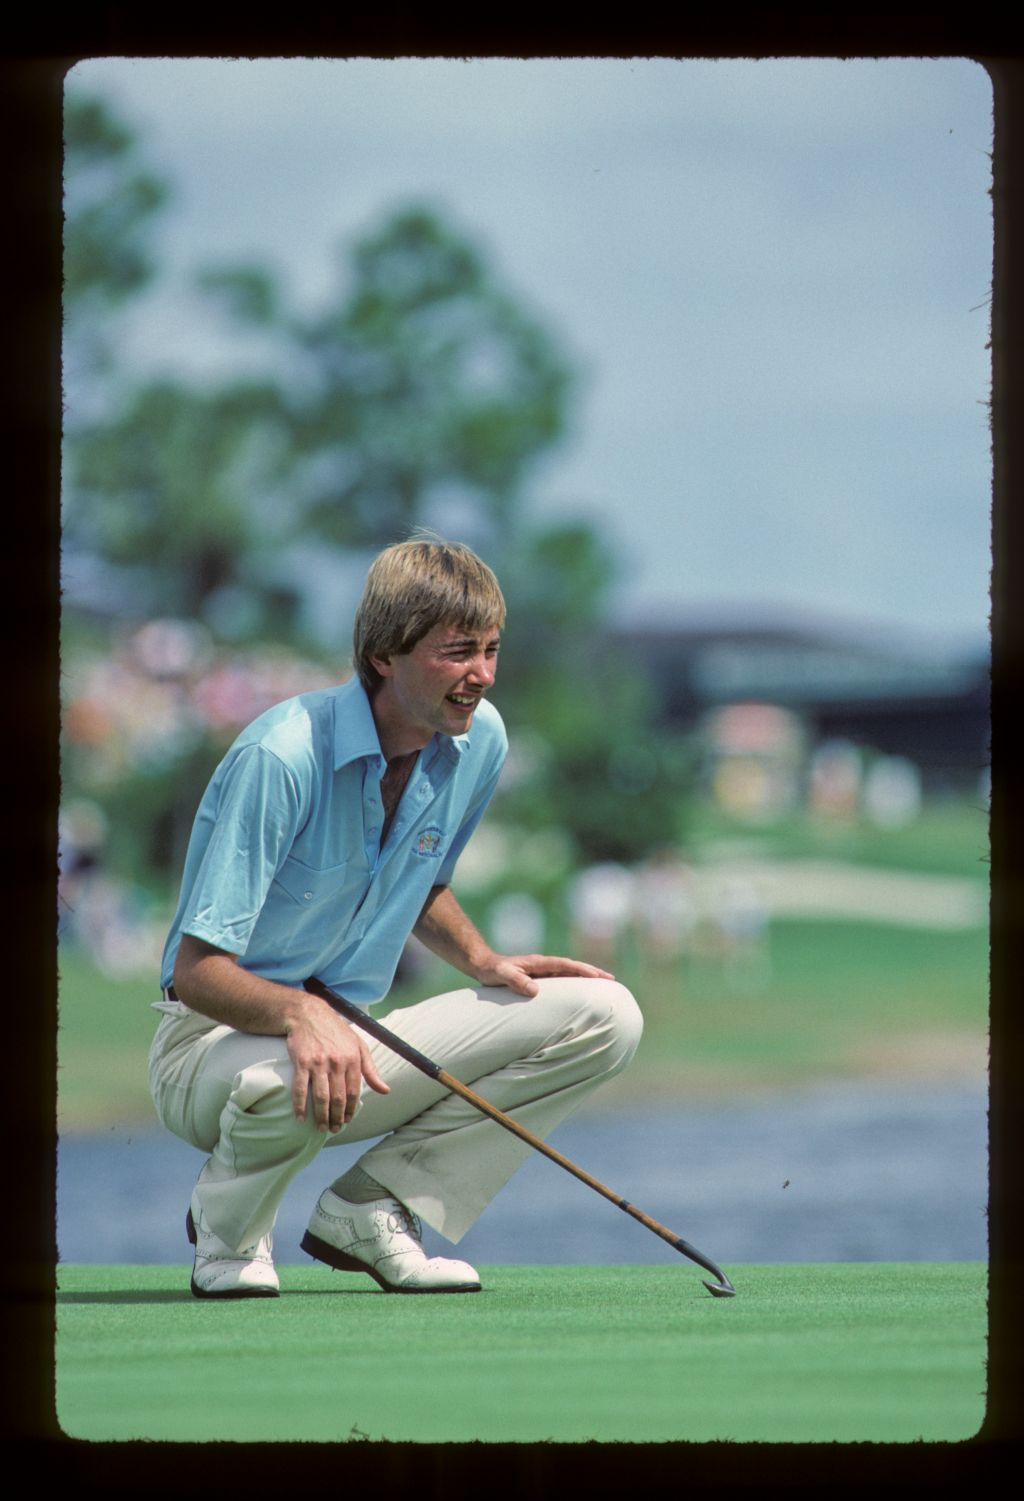 The idiosyncratic Ken Brown prepares to putt with an antique, hickory-shafted putter at the 1983 Ryder Cup